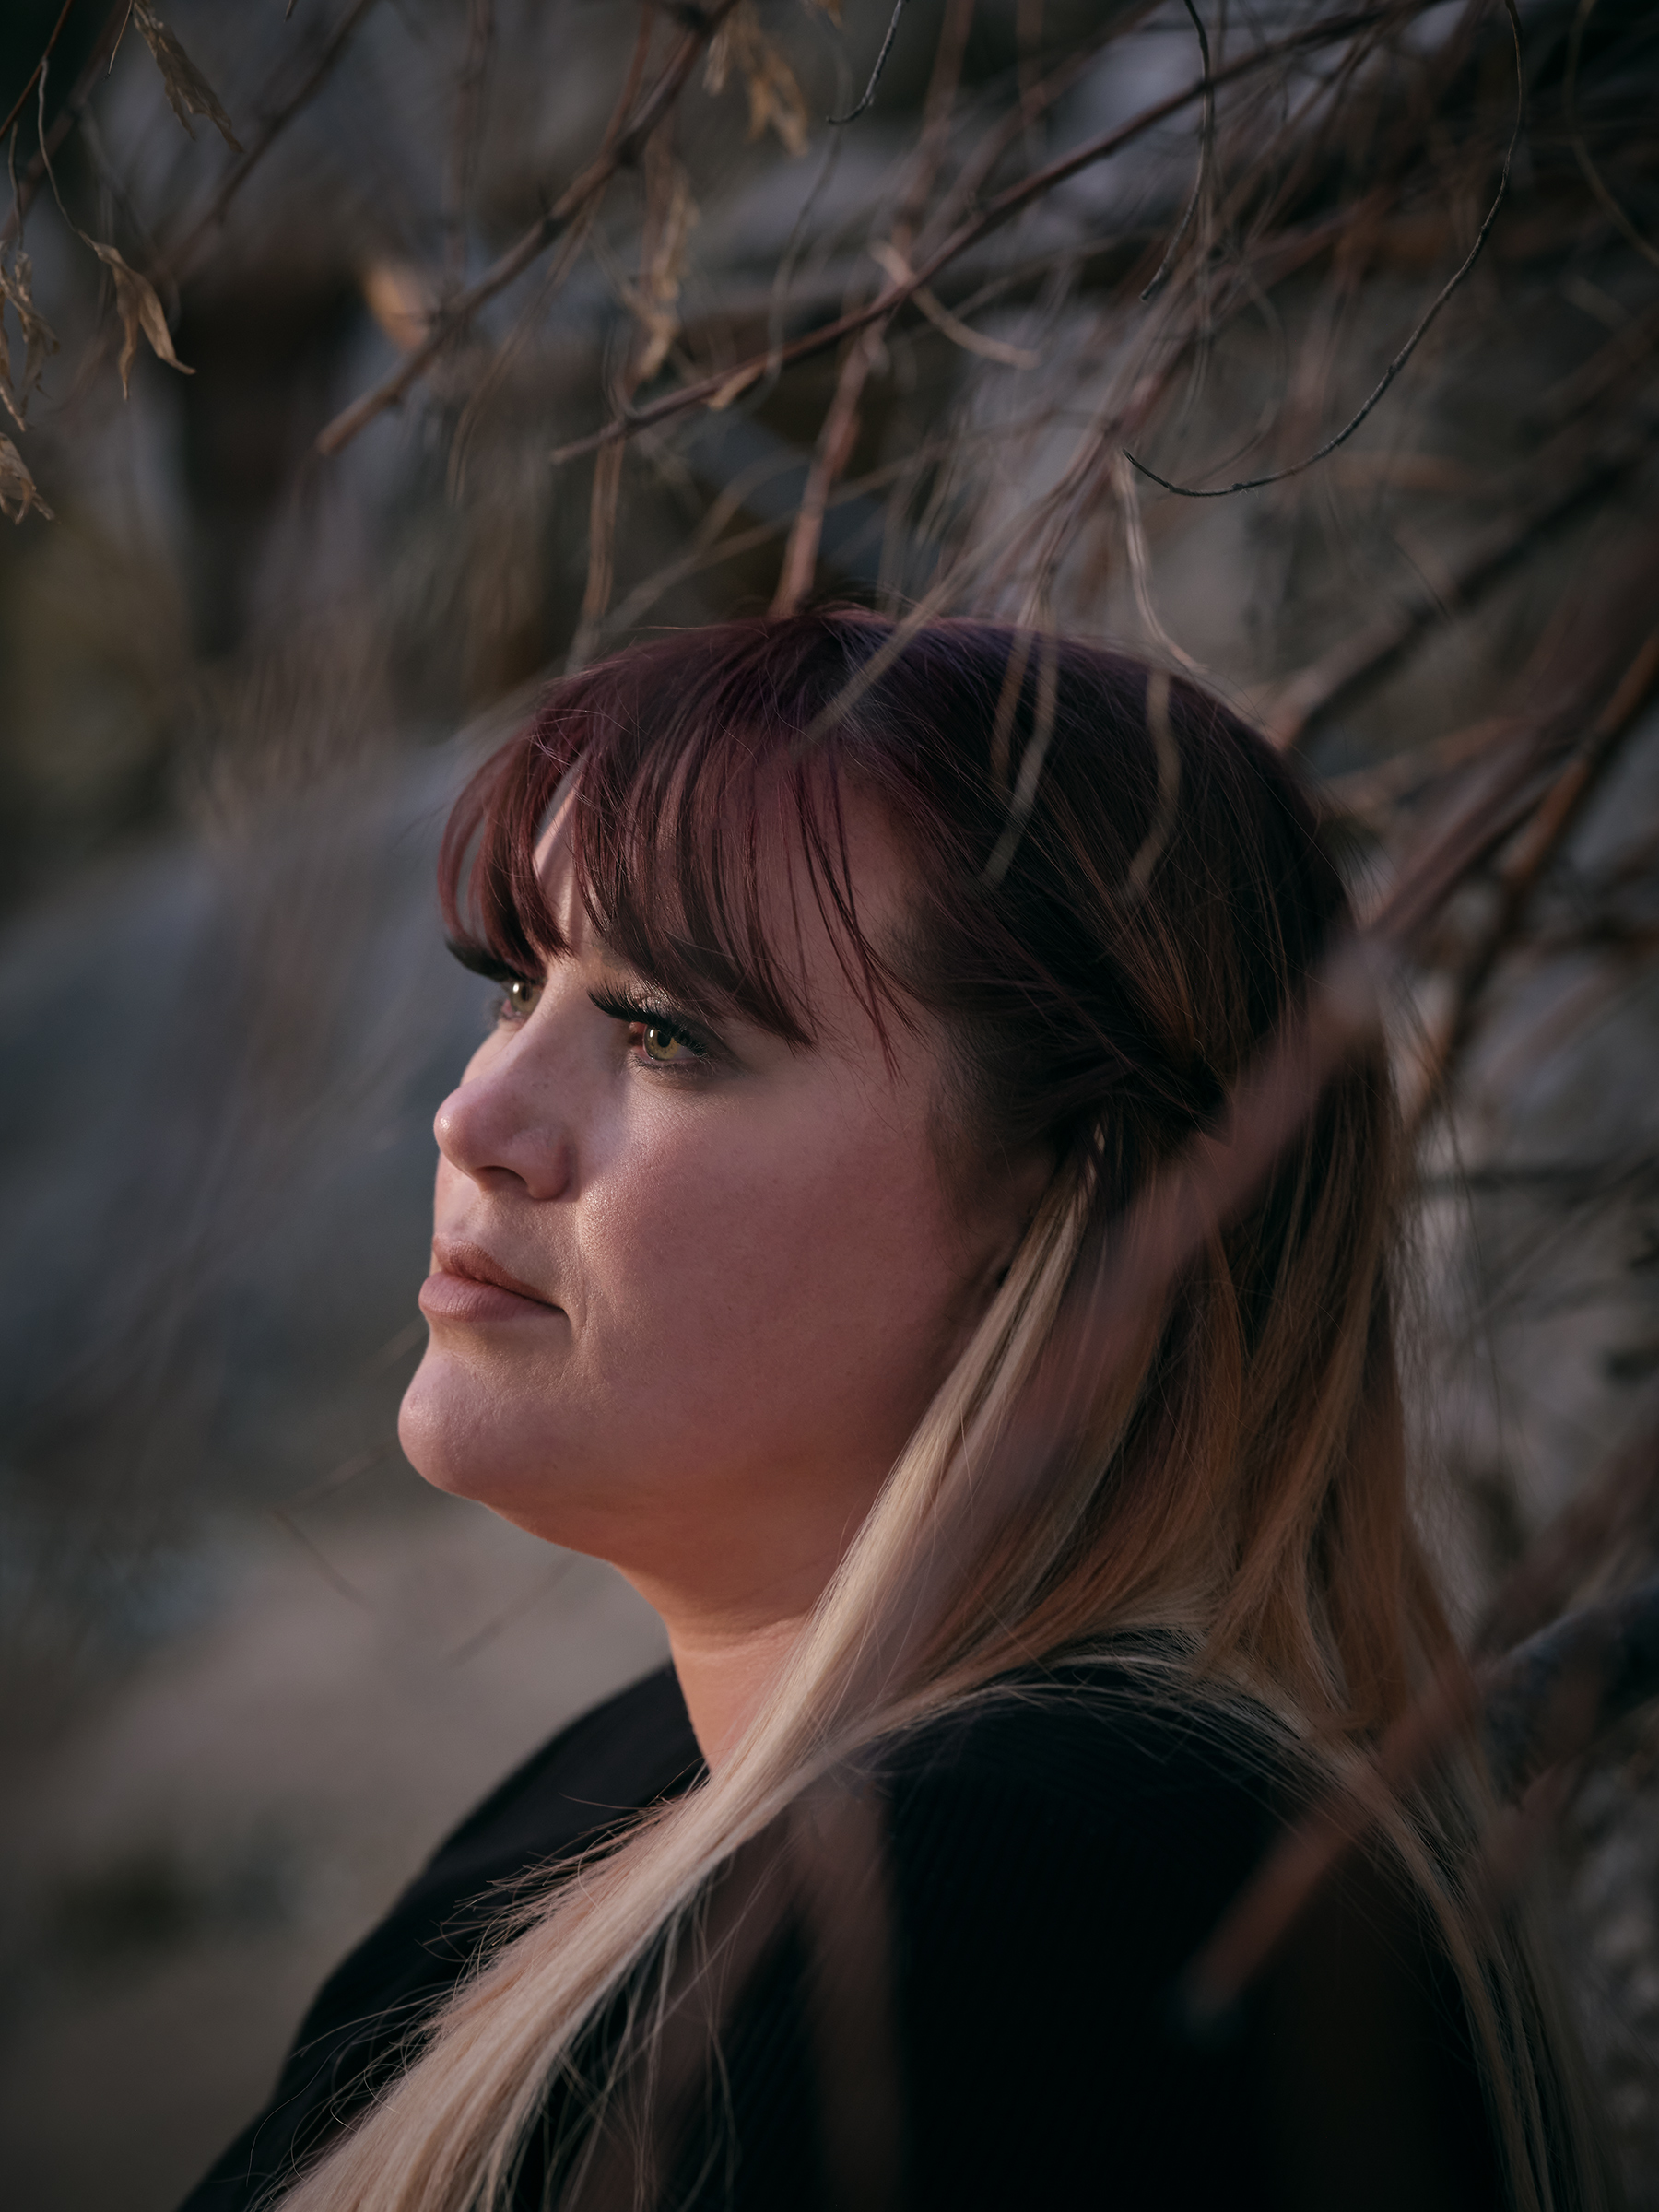 Jessalyn Speight was troubled by her work as an employee at ANLC